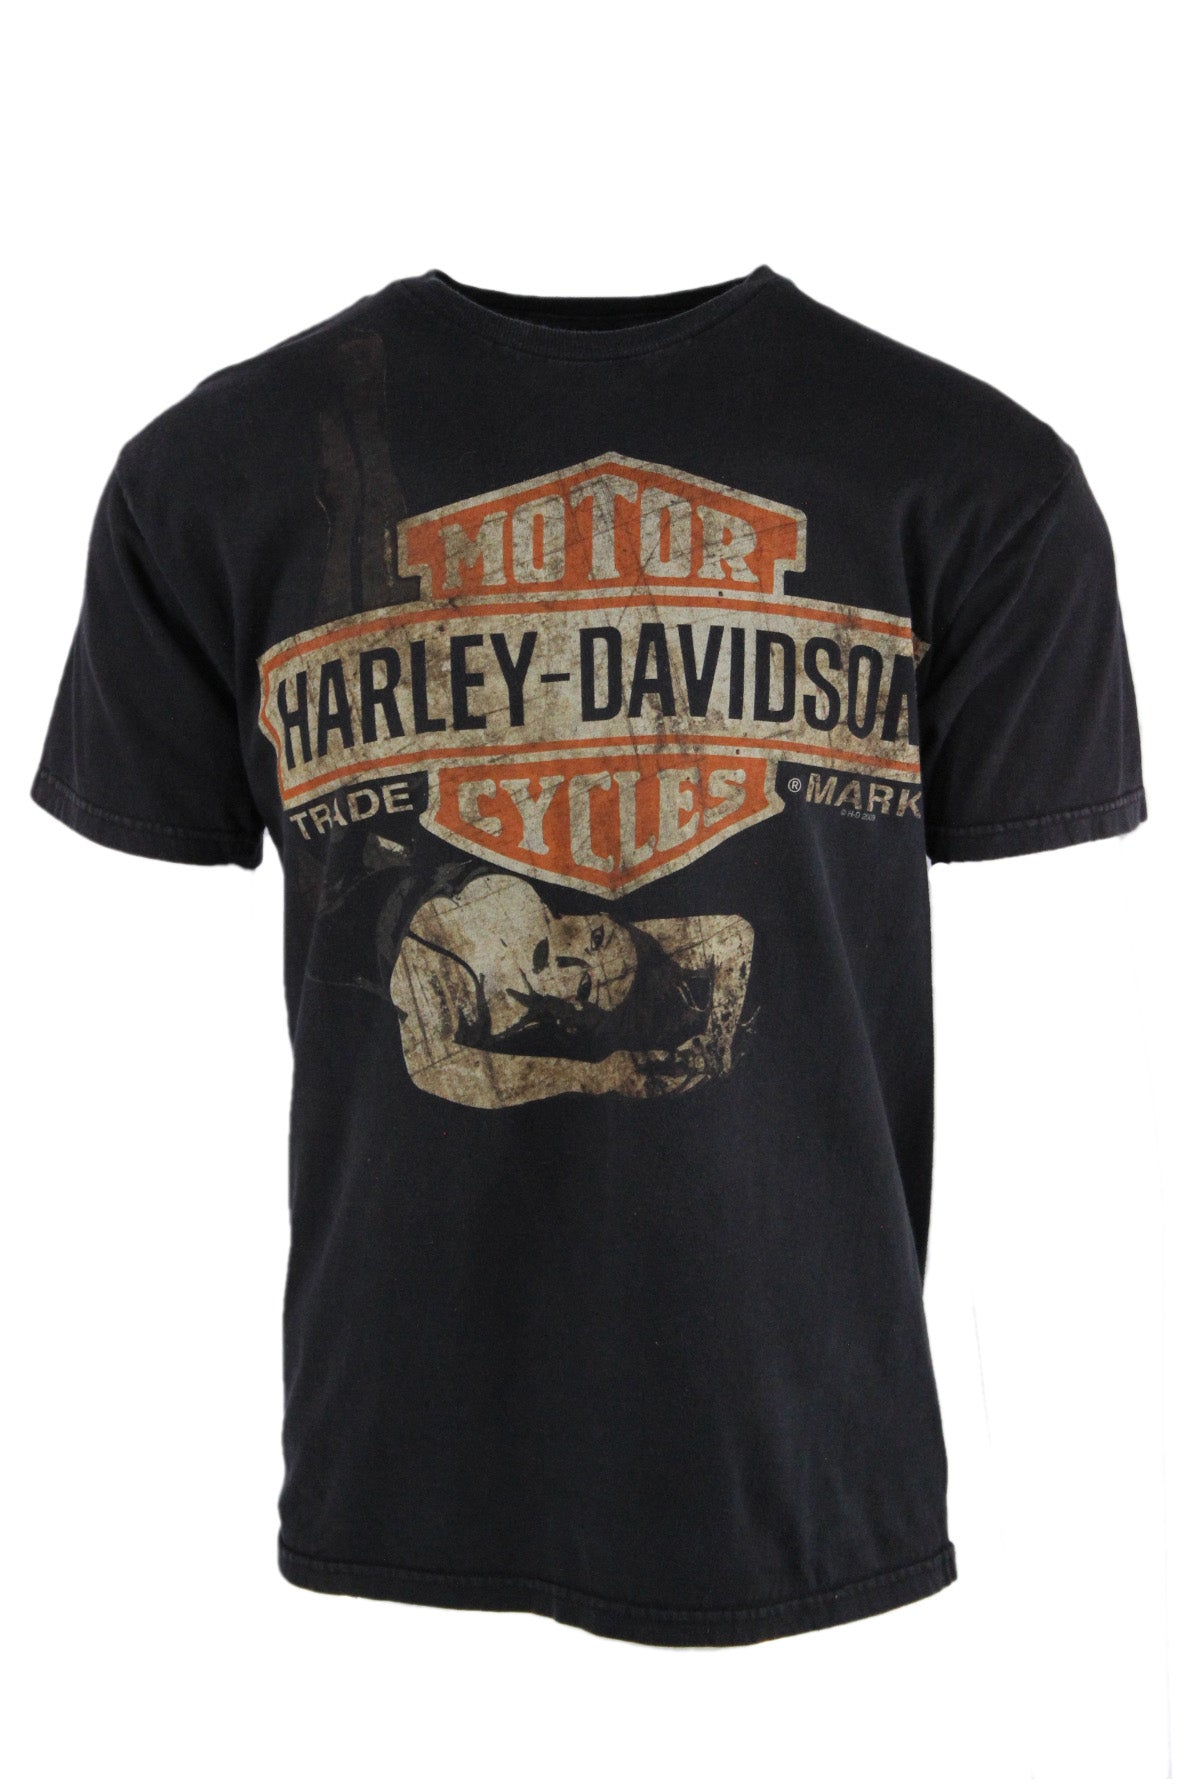 description: vintage harley-davidson black t-shirt. featuring ramstein, germany air base graphic on back.